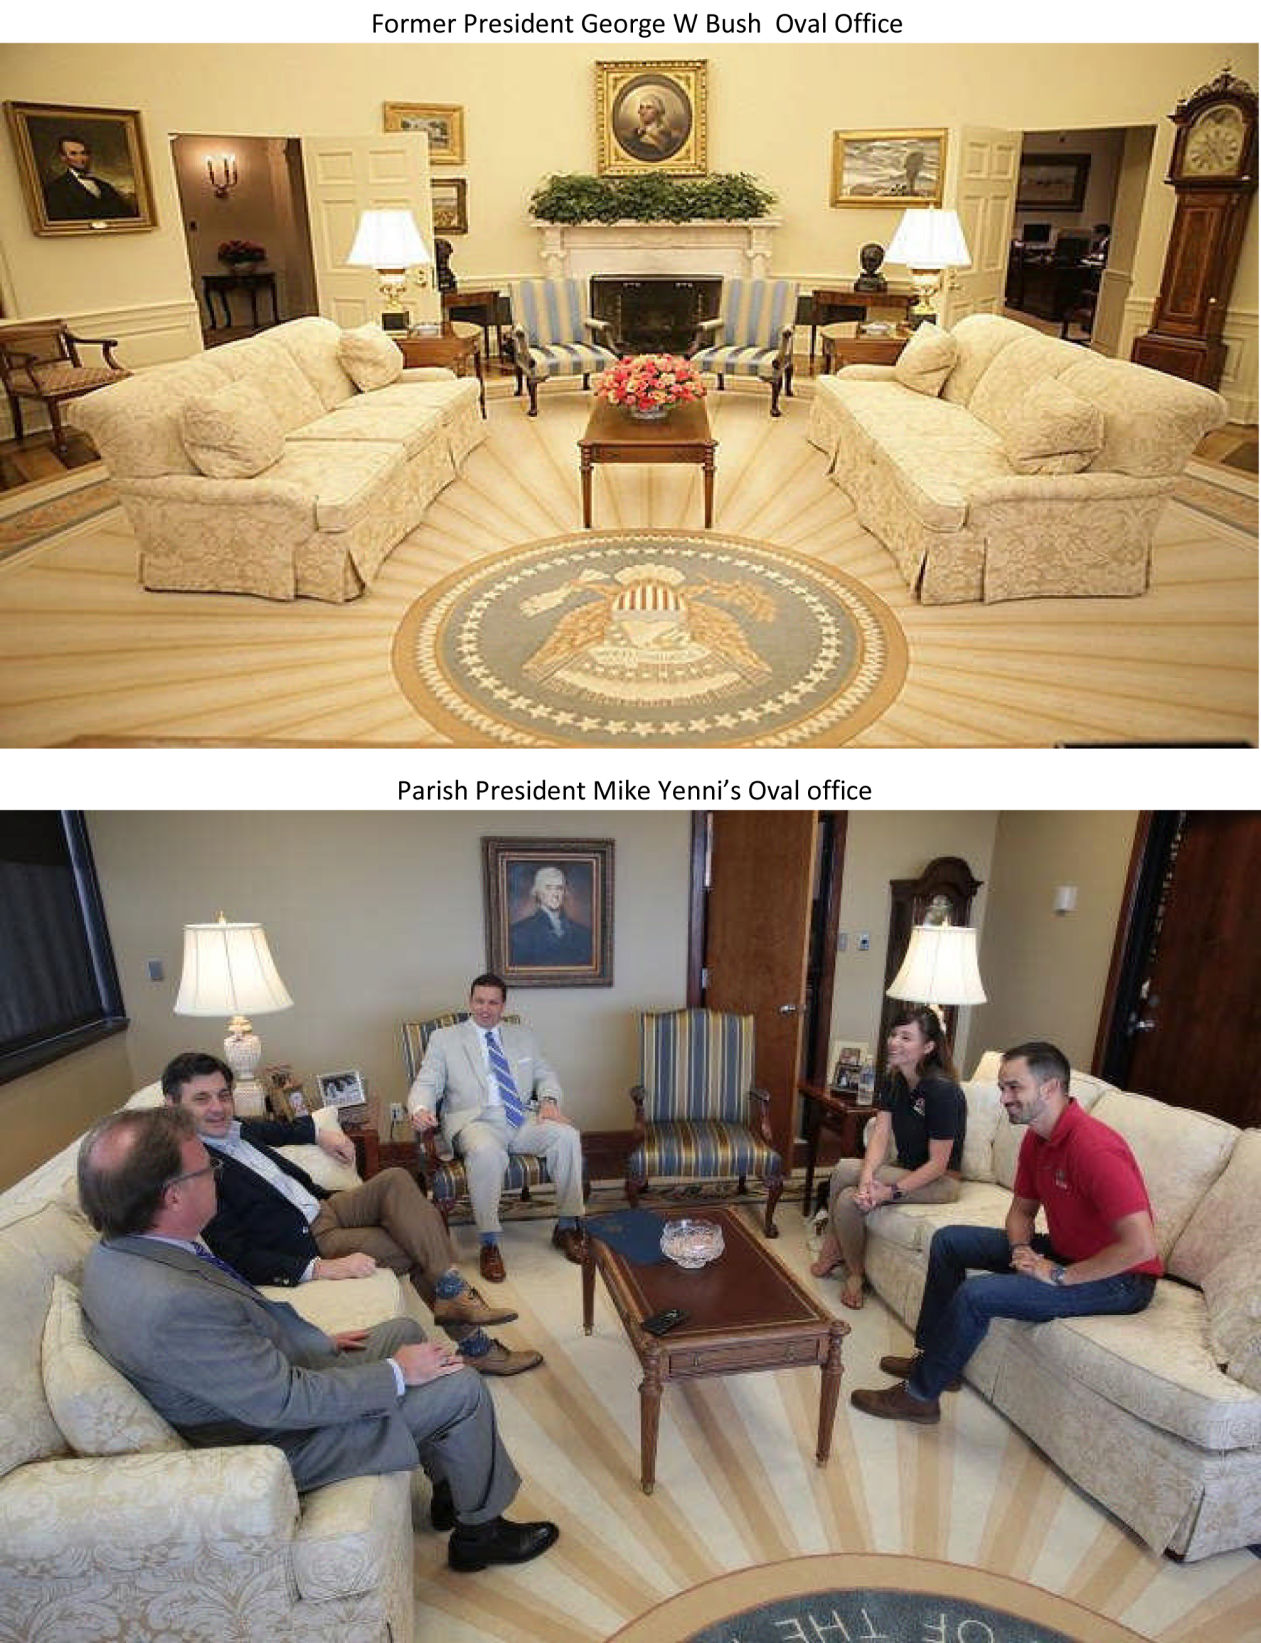 Oval office floor Rug Parish President Mike Yennis Oval Office The Advocate Wwltv Paid For Oval Office Replica Jefferson President Mike